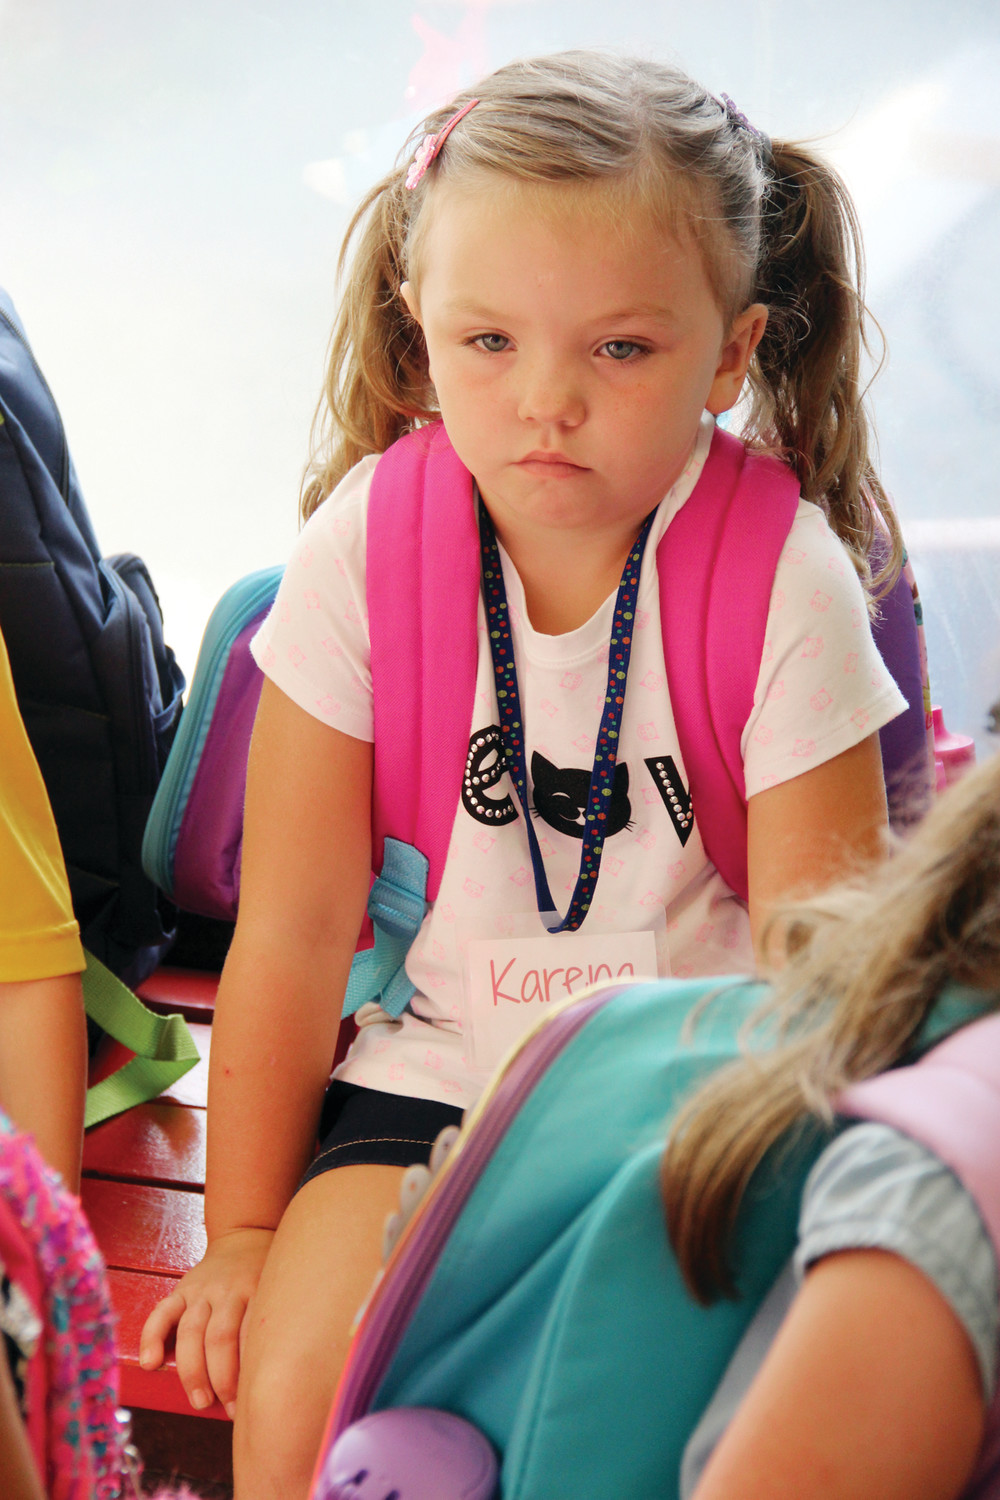 BRAVE FACE: Kindergartener Karena Stephenson waits for class assignment as she waits in the Sherman School hallway